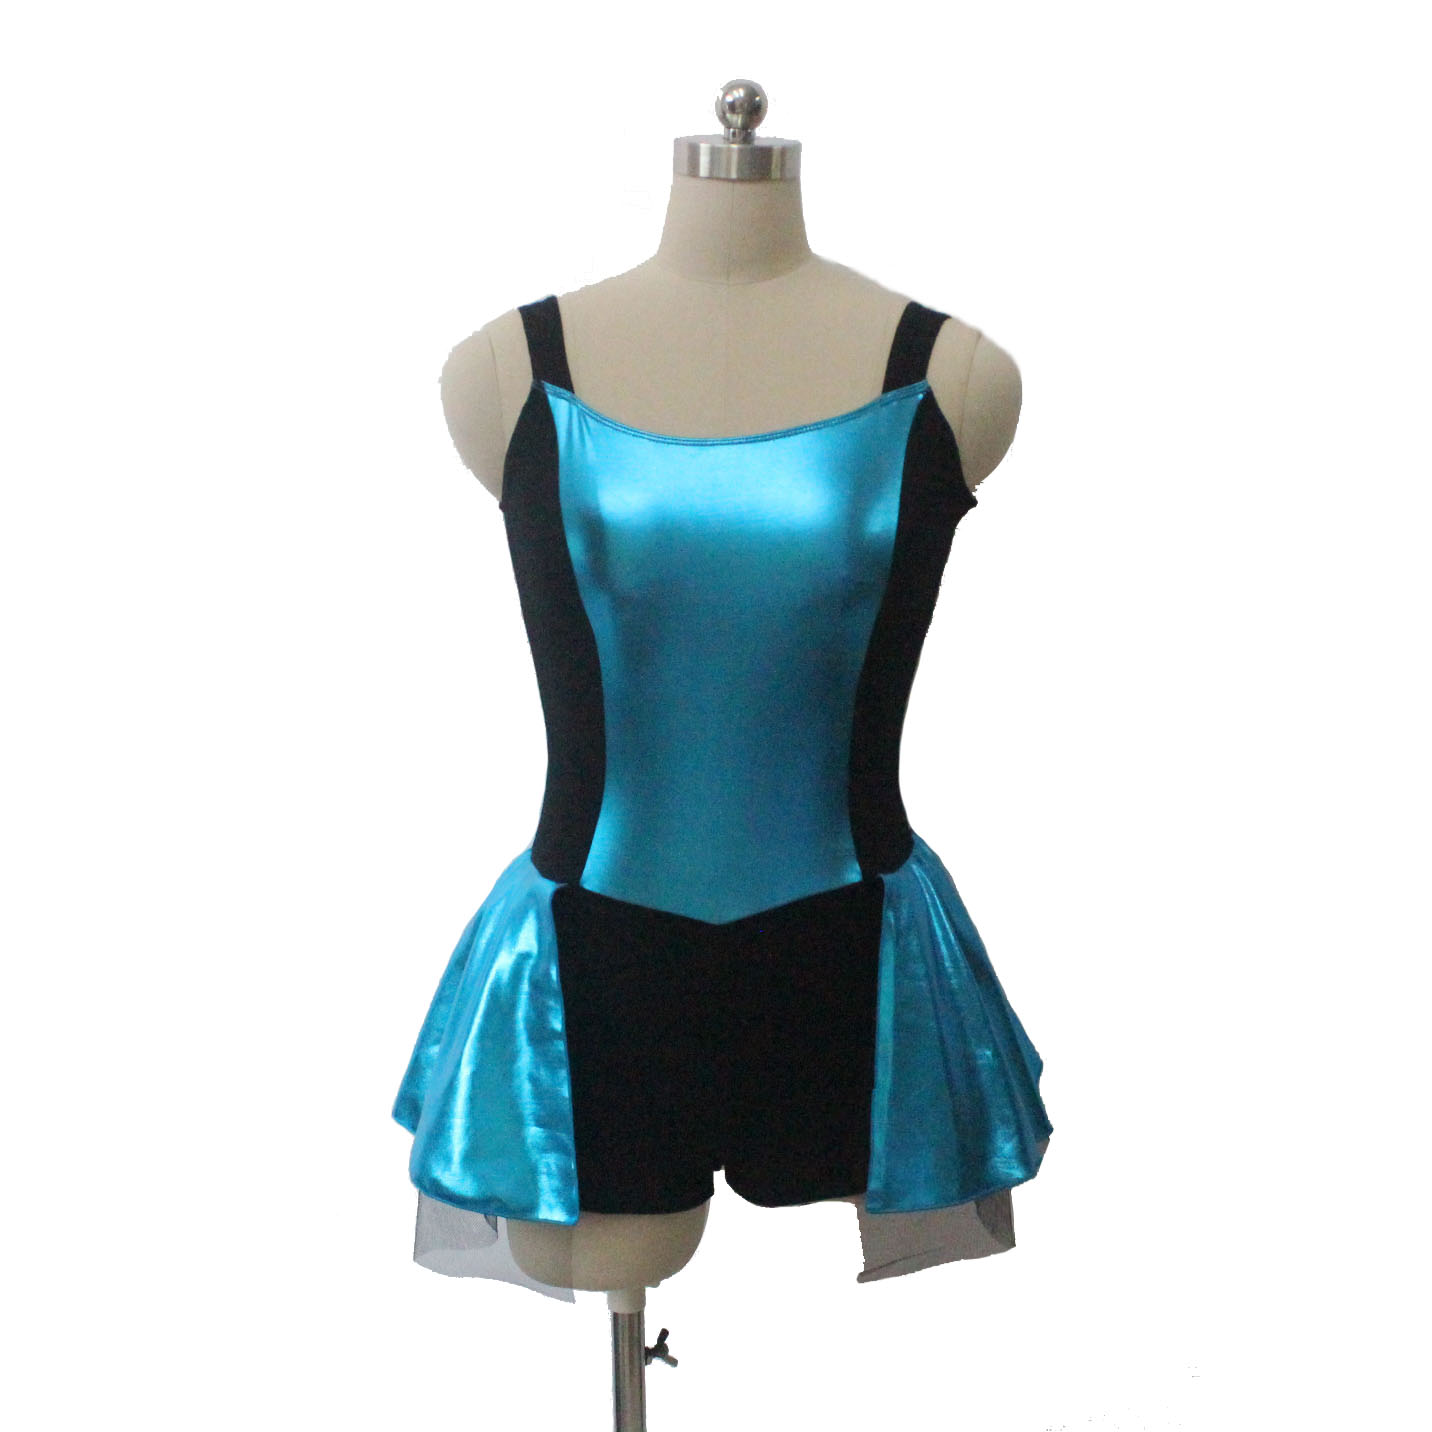 Hi Wendy